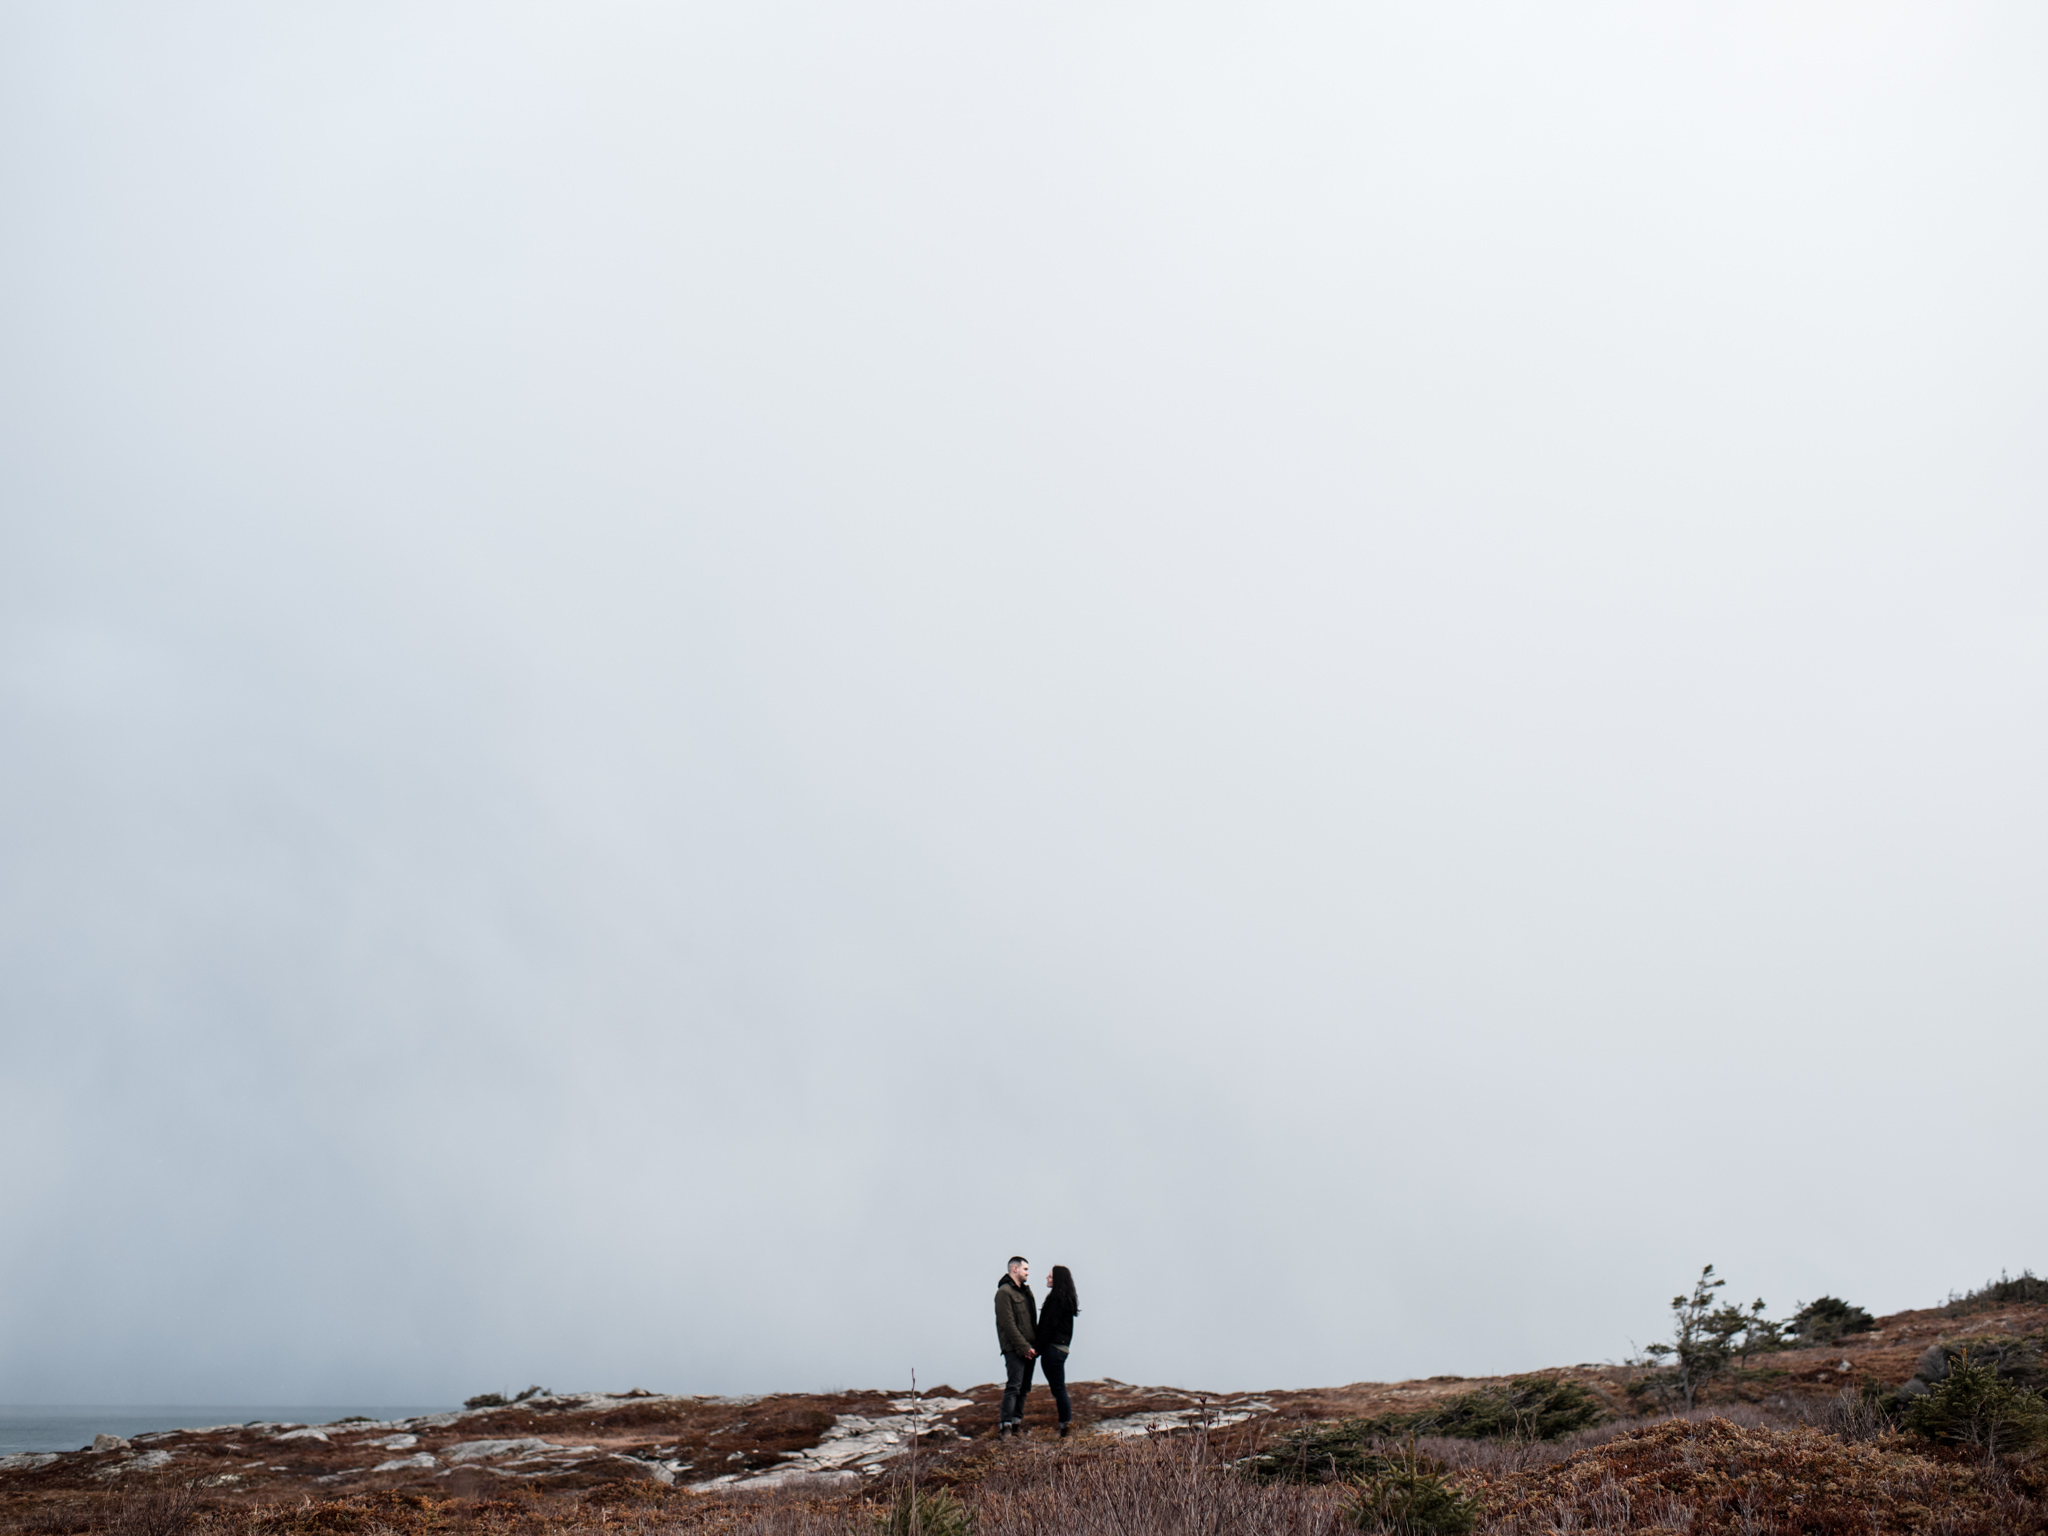 duncans-cove-halifax-engagement-photography-7.jpg